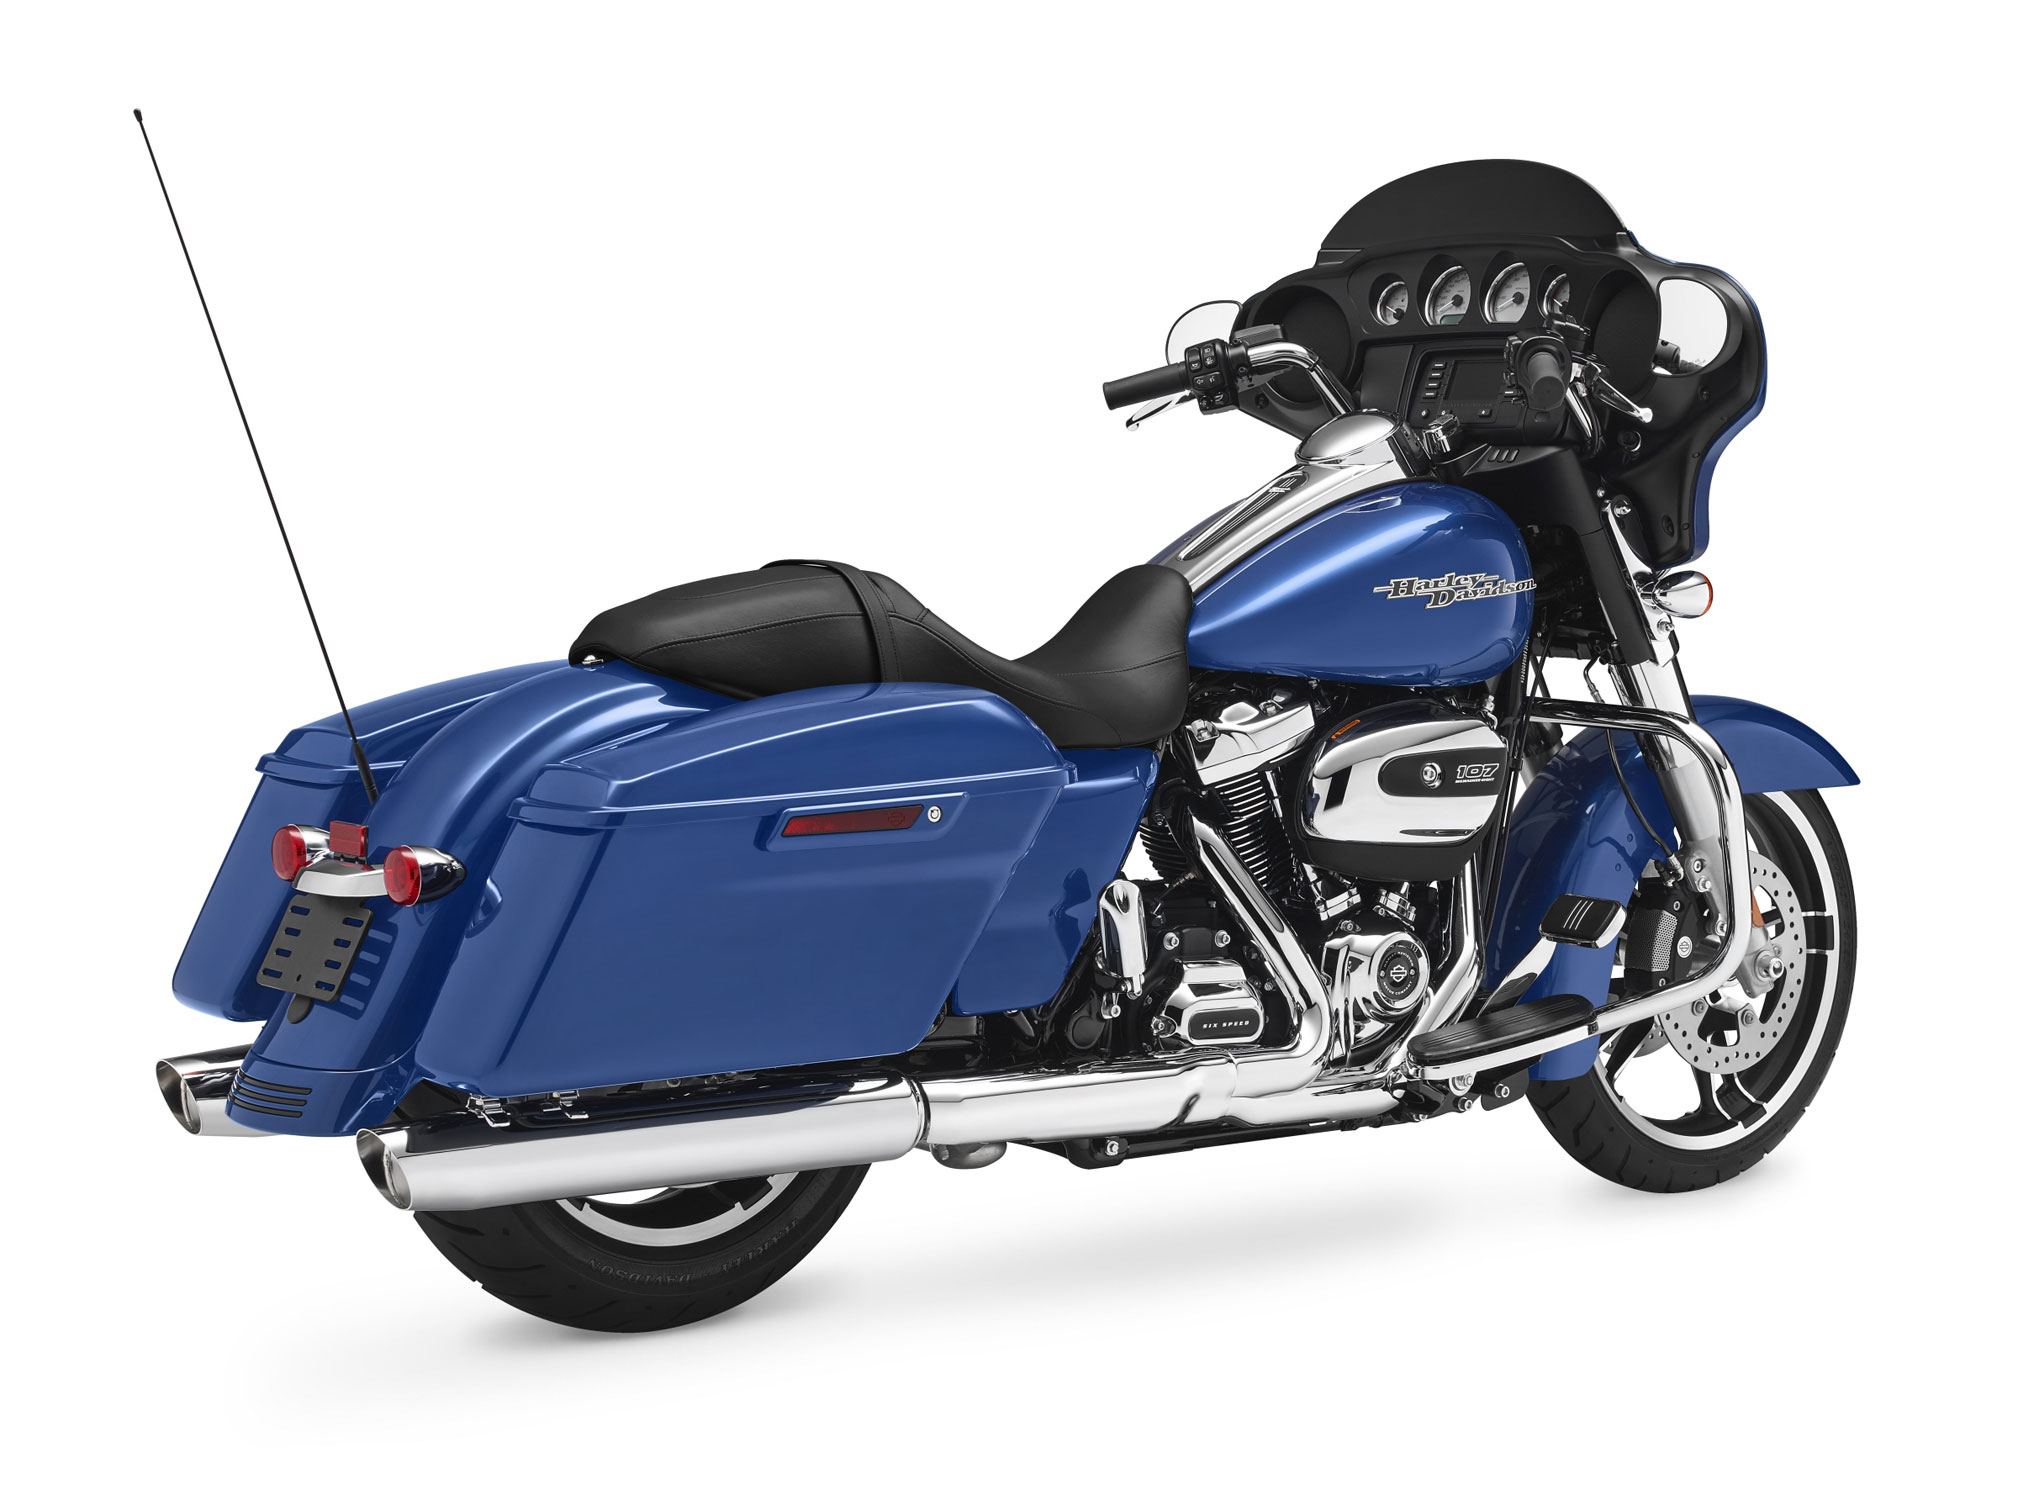 2018 harley davidson street glide review totalmotorcycle. Black Bedroom Furniture Sets. Home Design Ideas